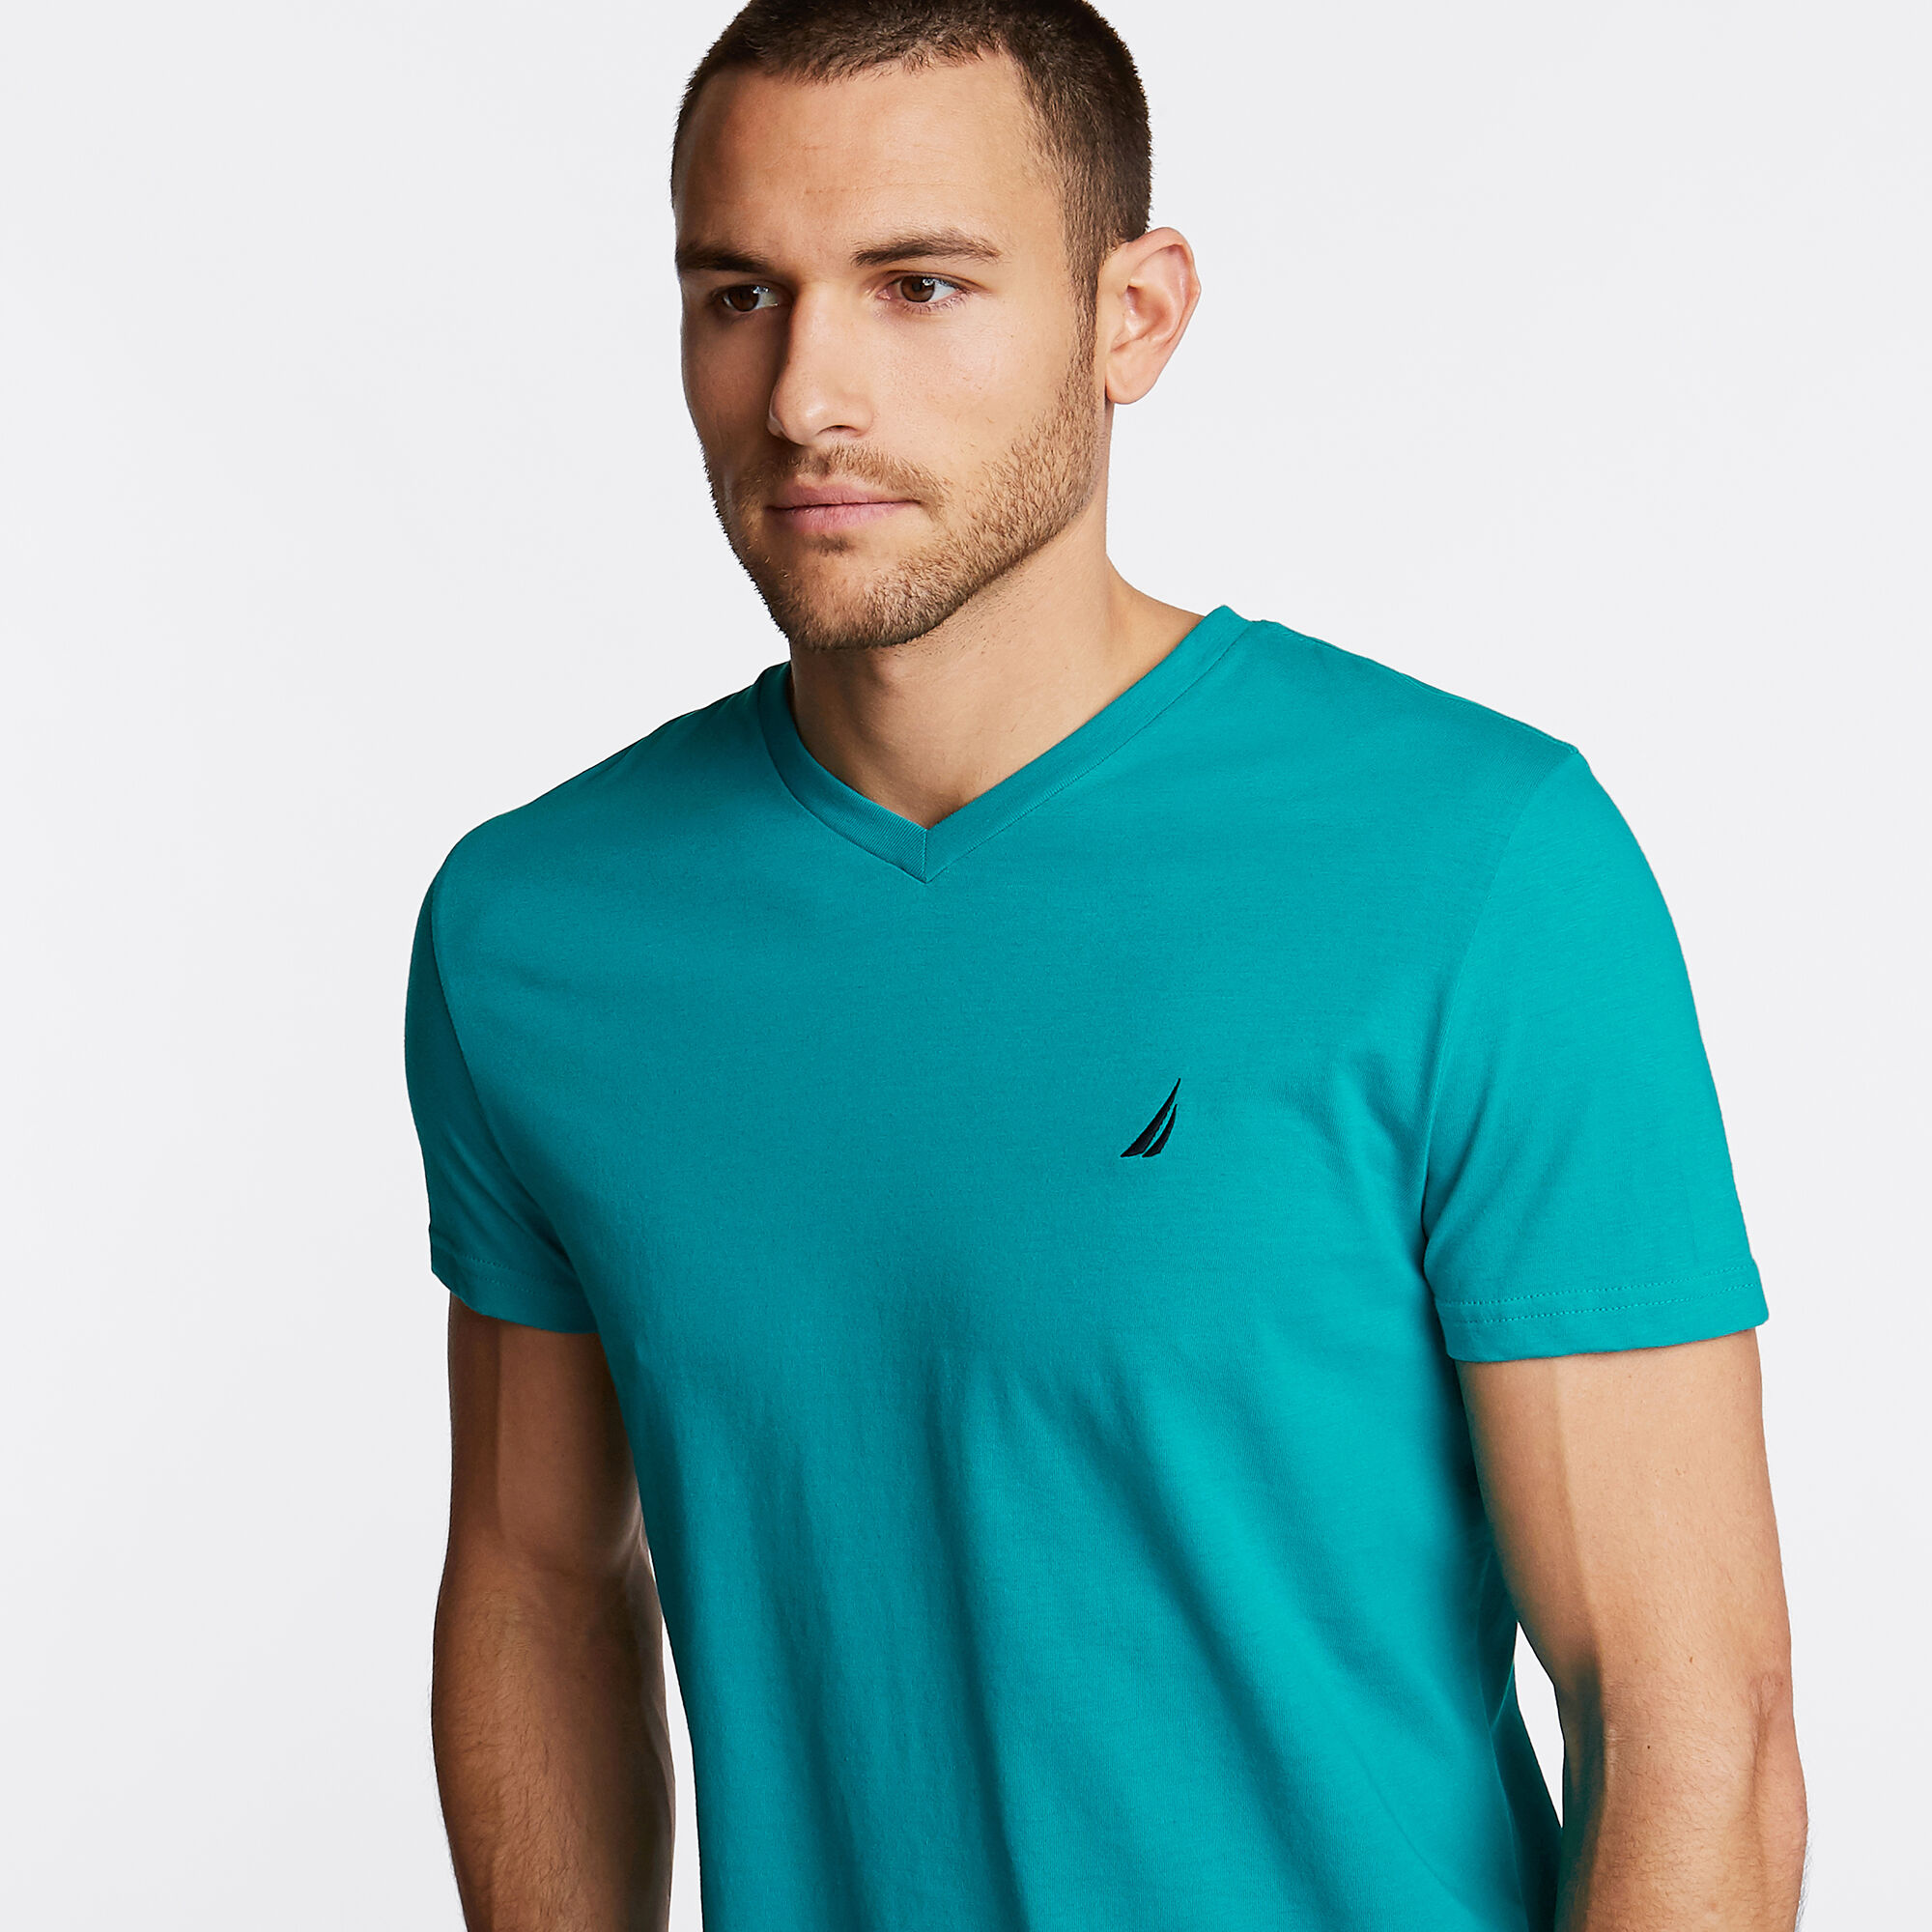 Nautica-Mens-V-Neck-Short-Sleeve-T-Shirt thumbnail 23